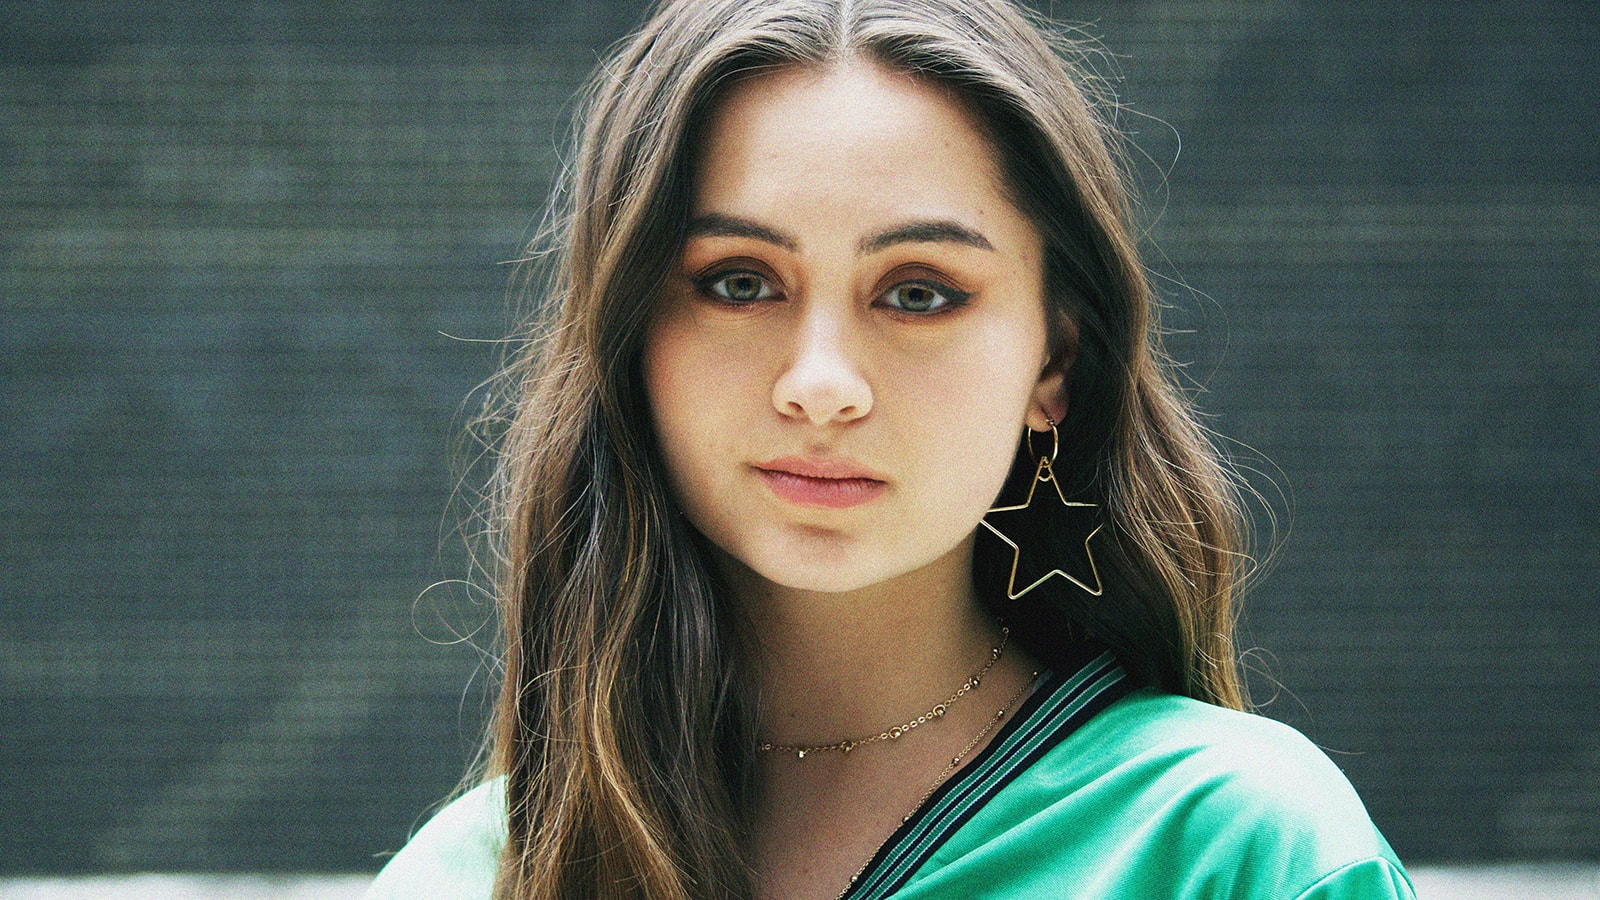 I Am Single Girl Wallpaper Premiere Jasmine Thompson S Quot Wonderland Quot Of Wasted Youth